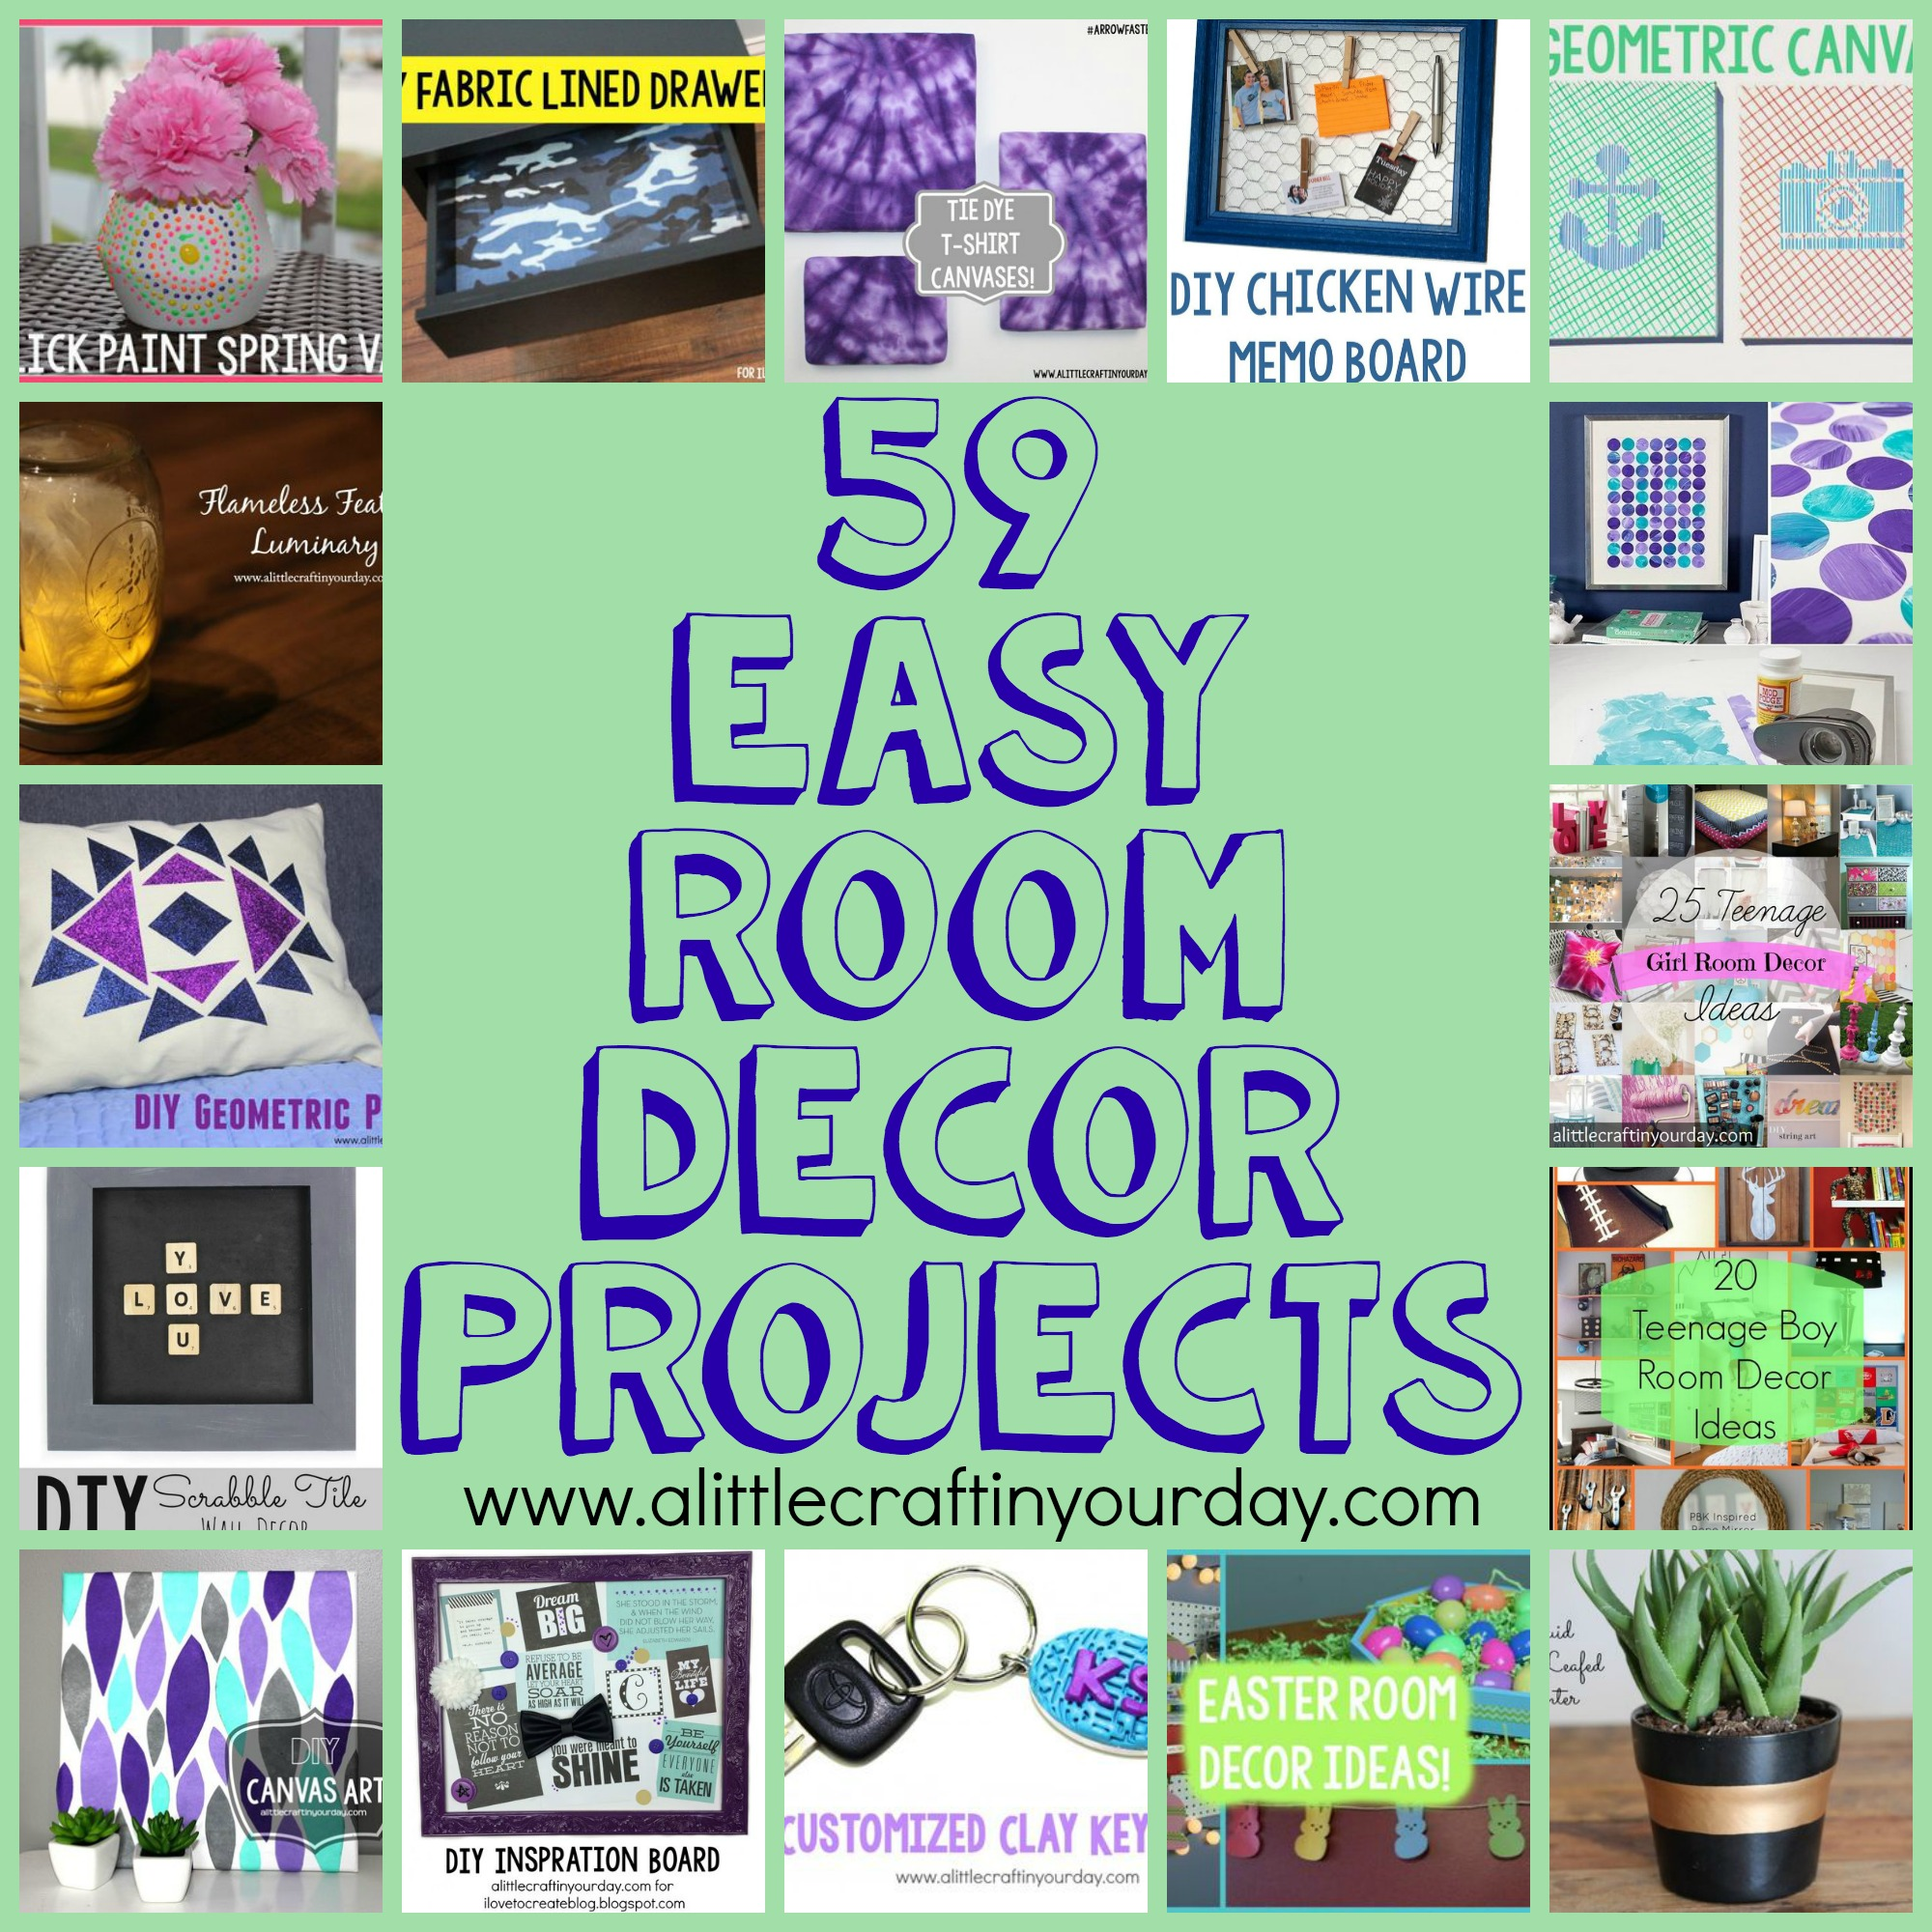 Superb 3/31 | 59 Easy DIY Room Decor Projects